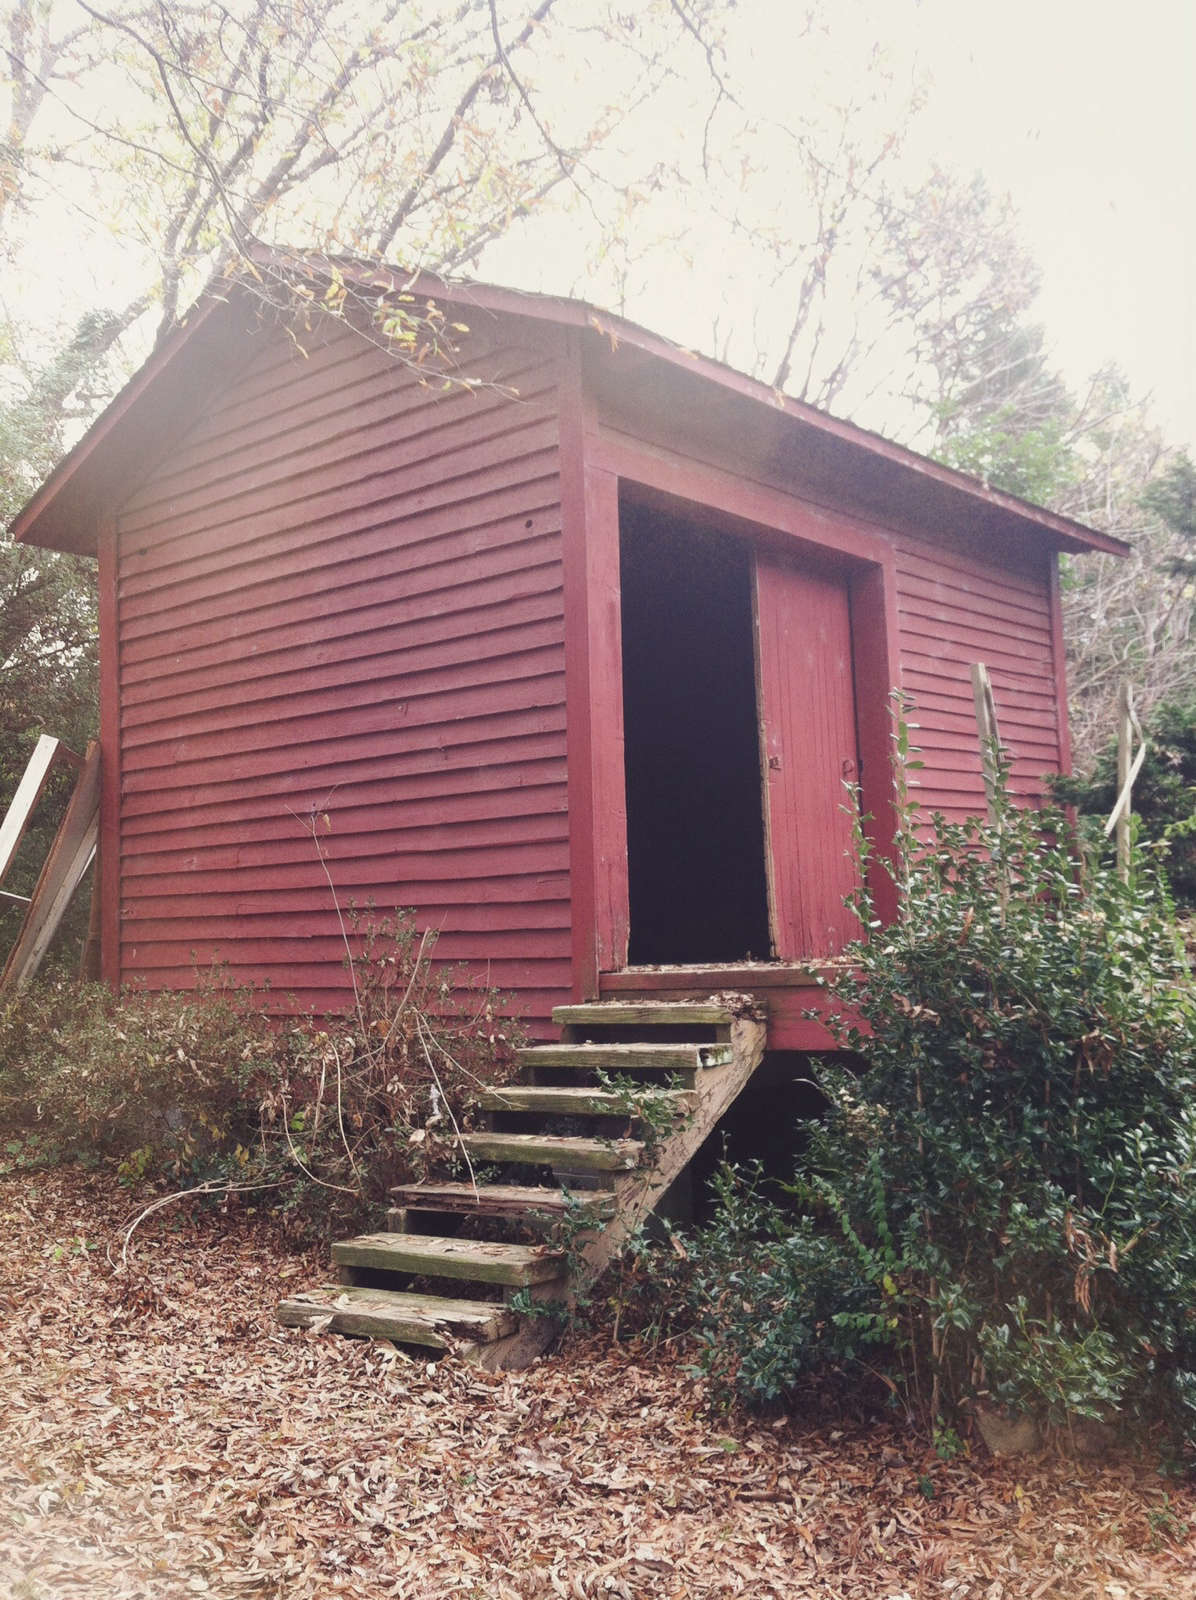 Good South Studio Found Shed, Photo by Chris and Elizabeth Boyette